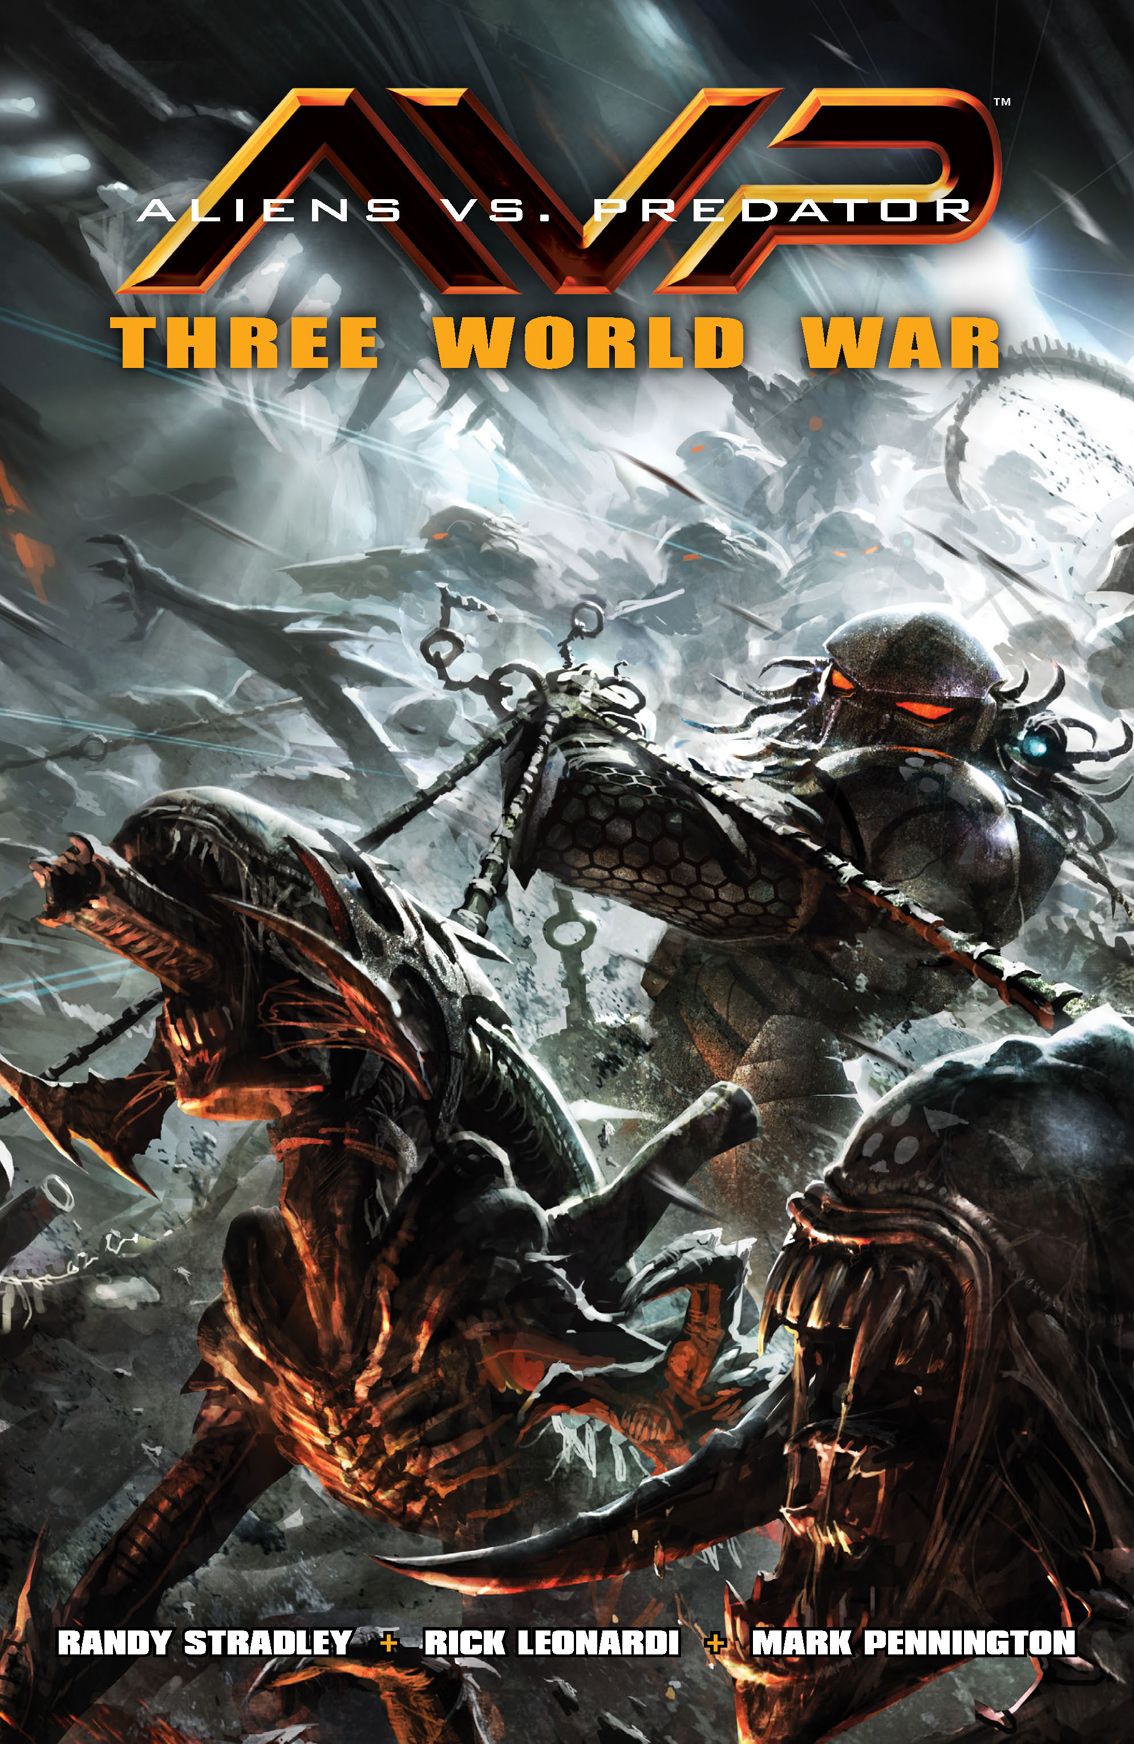 Aliens vs. Predator: Three World War By: Randy Stradley,  Rick Leonardi (Penciller),  Mark Pennington (Inker), Wes Dzioba (Colorist), Raymond Swanland (Cover Artist)